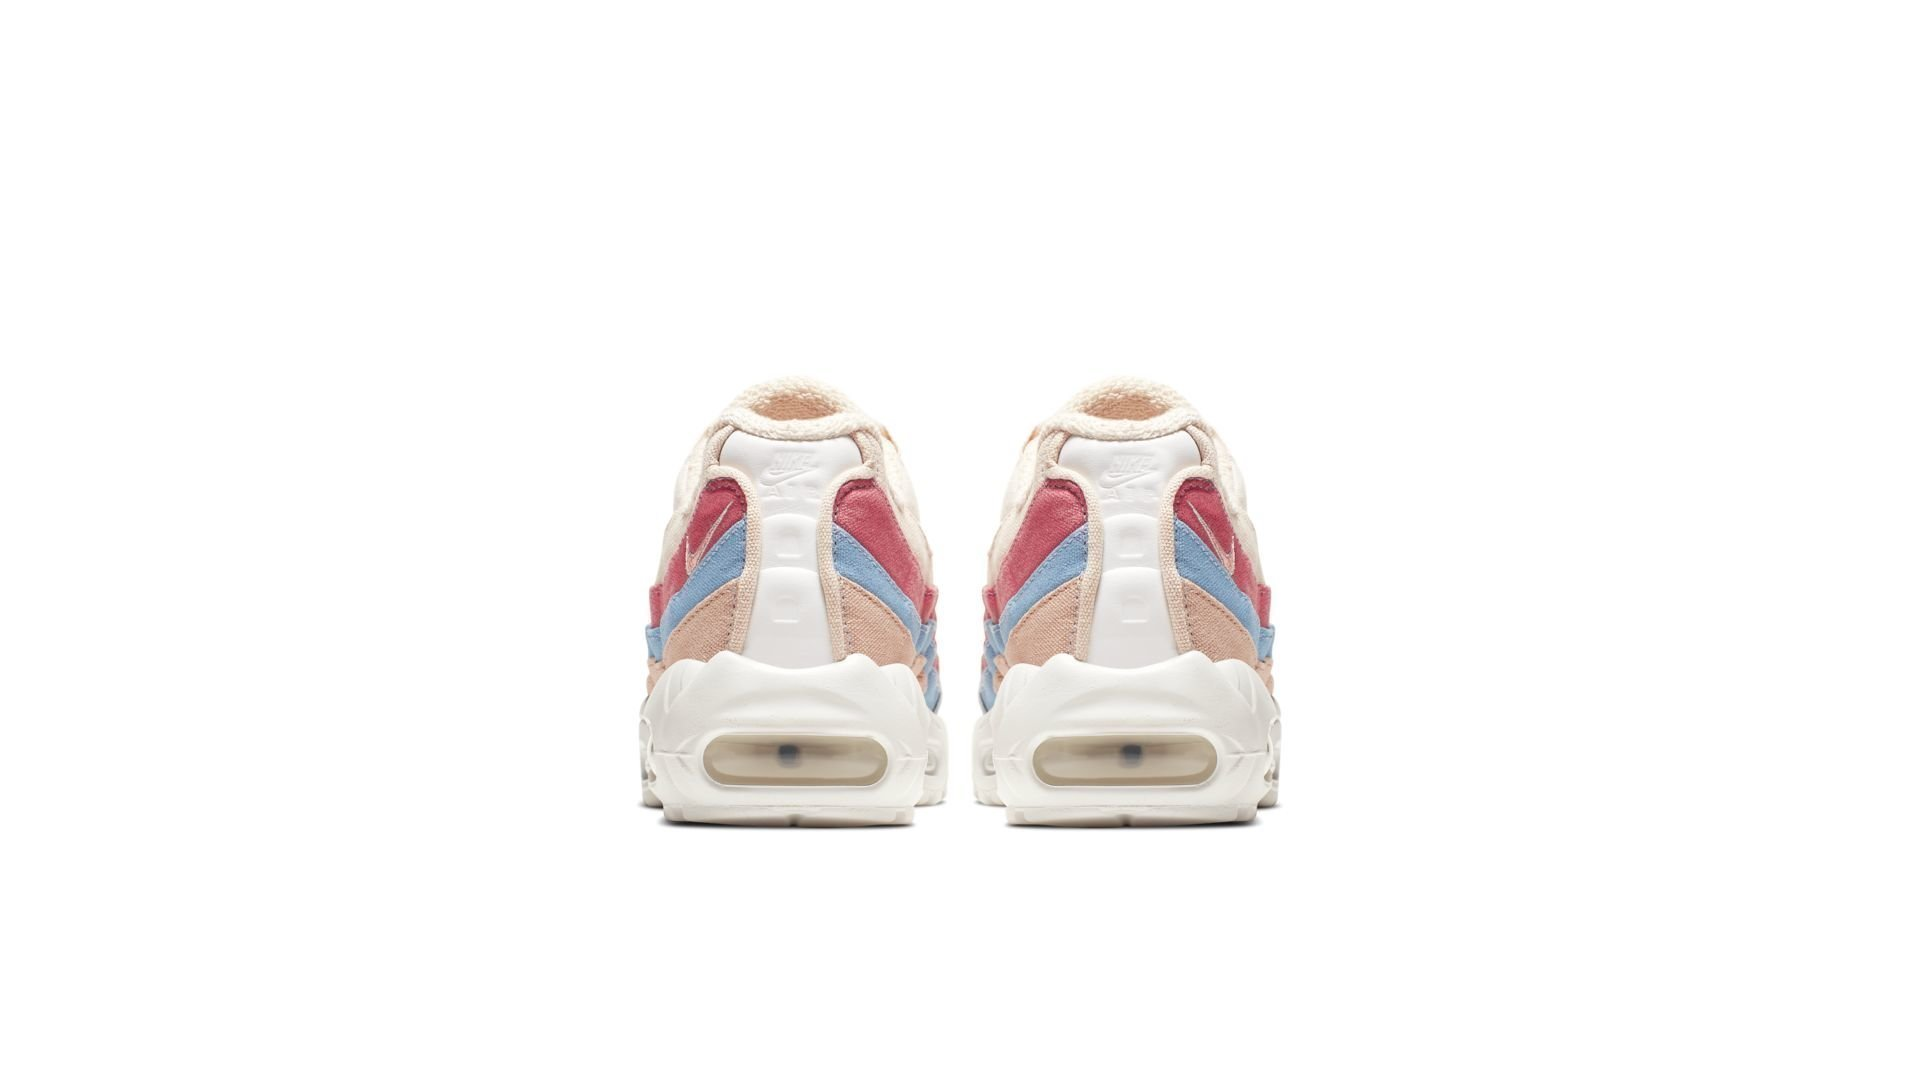 Nike Air Max 95 Plant Color 'Red/Blue' (CD7142-800)